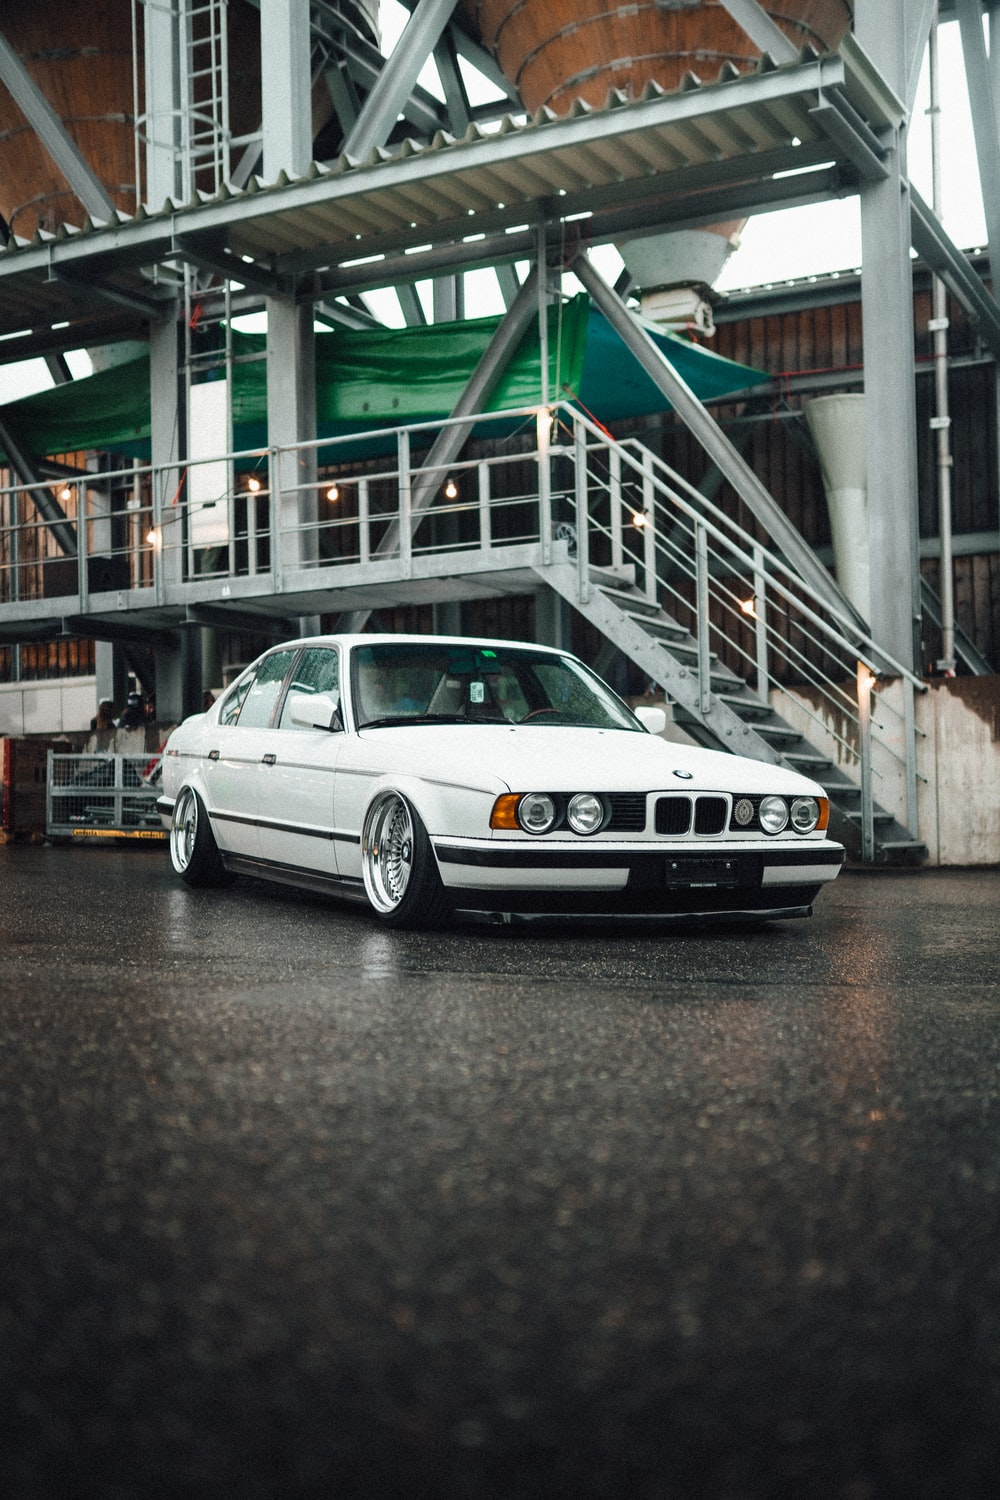 white bmw m 3 coupe parked on gray concrete pavement